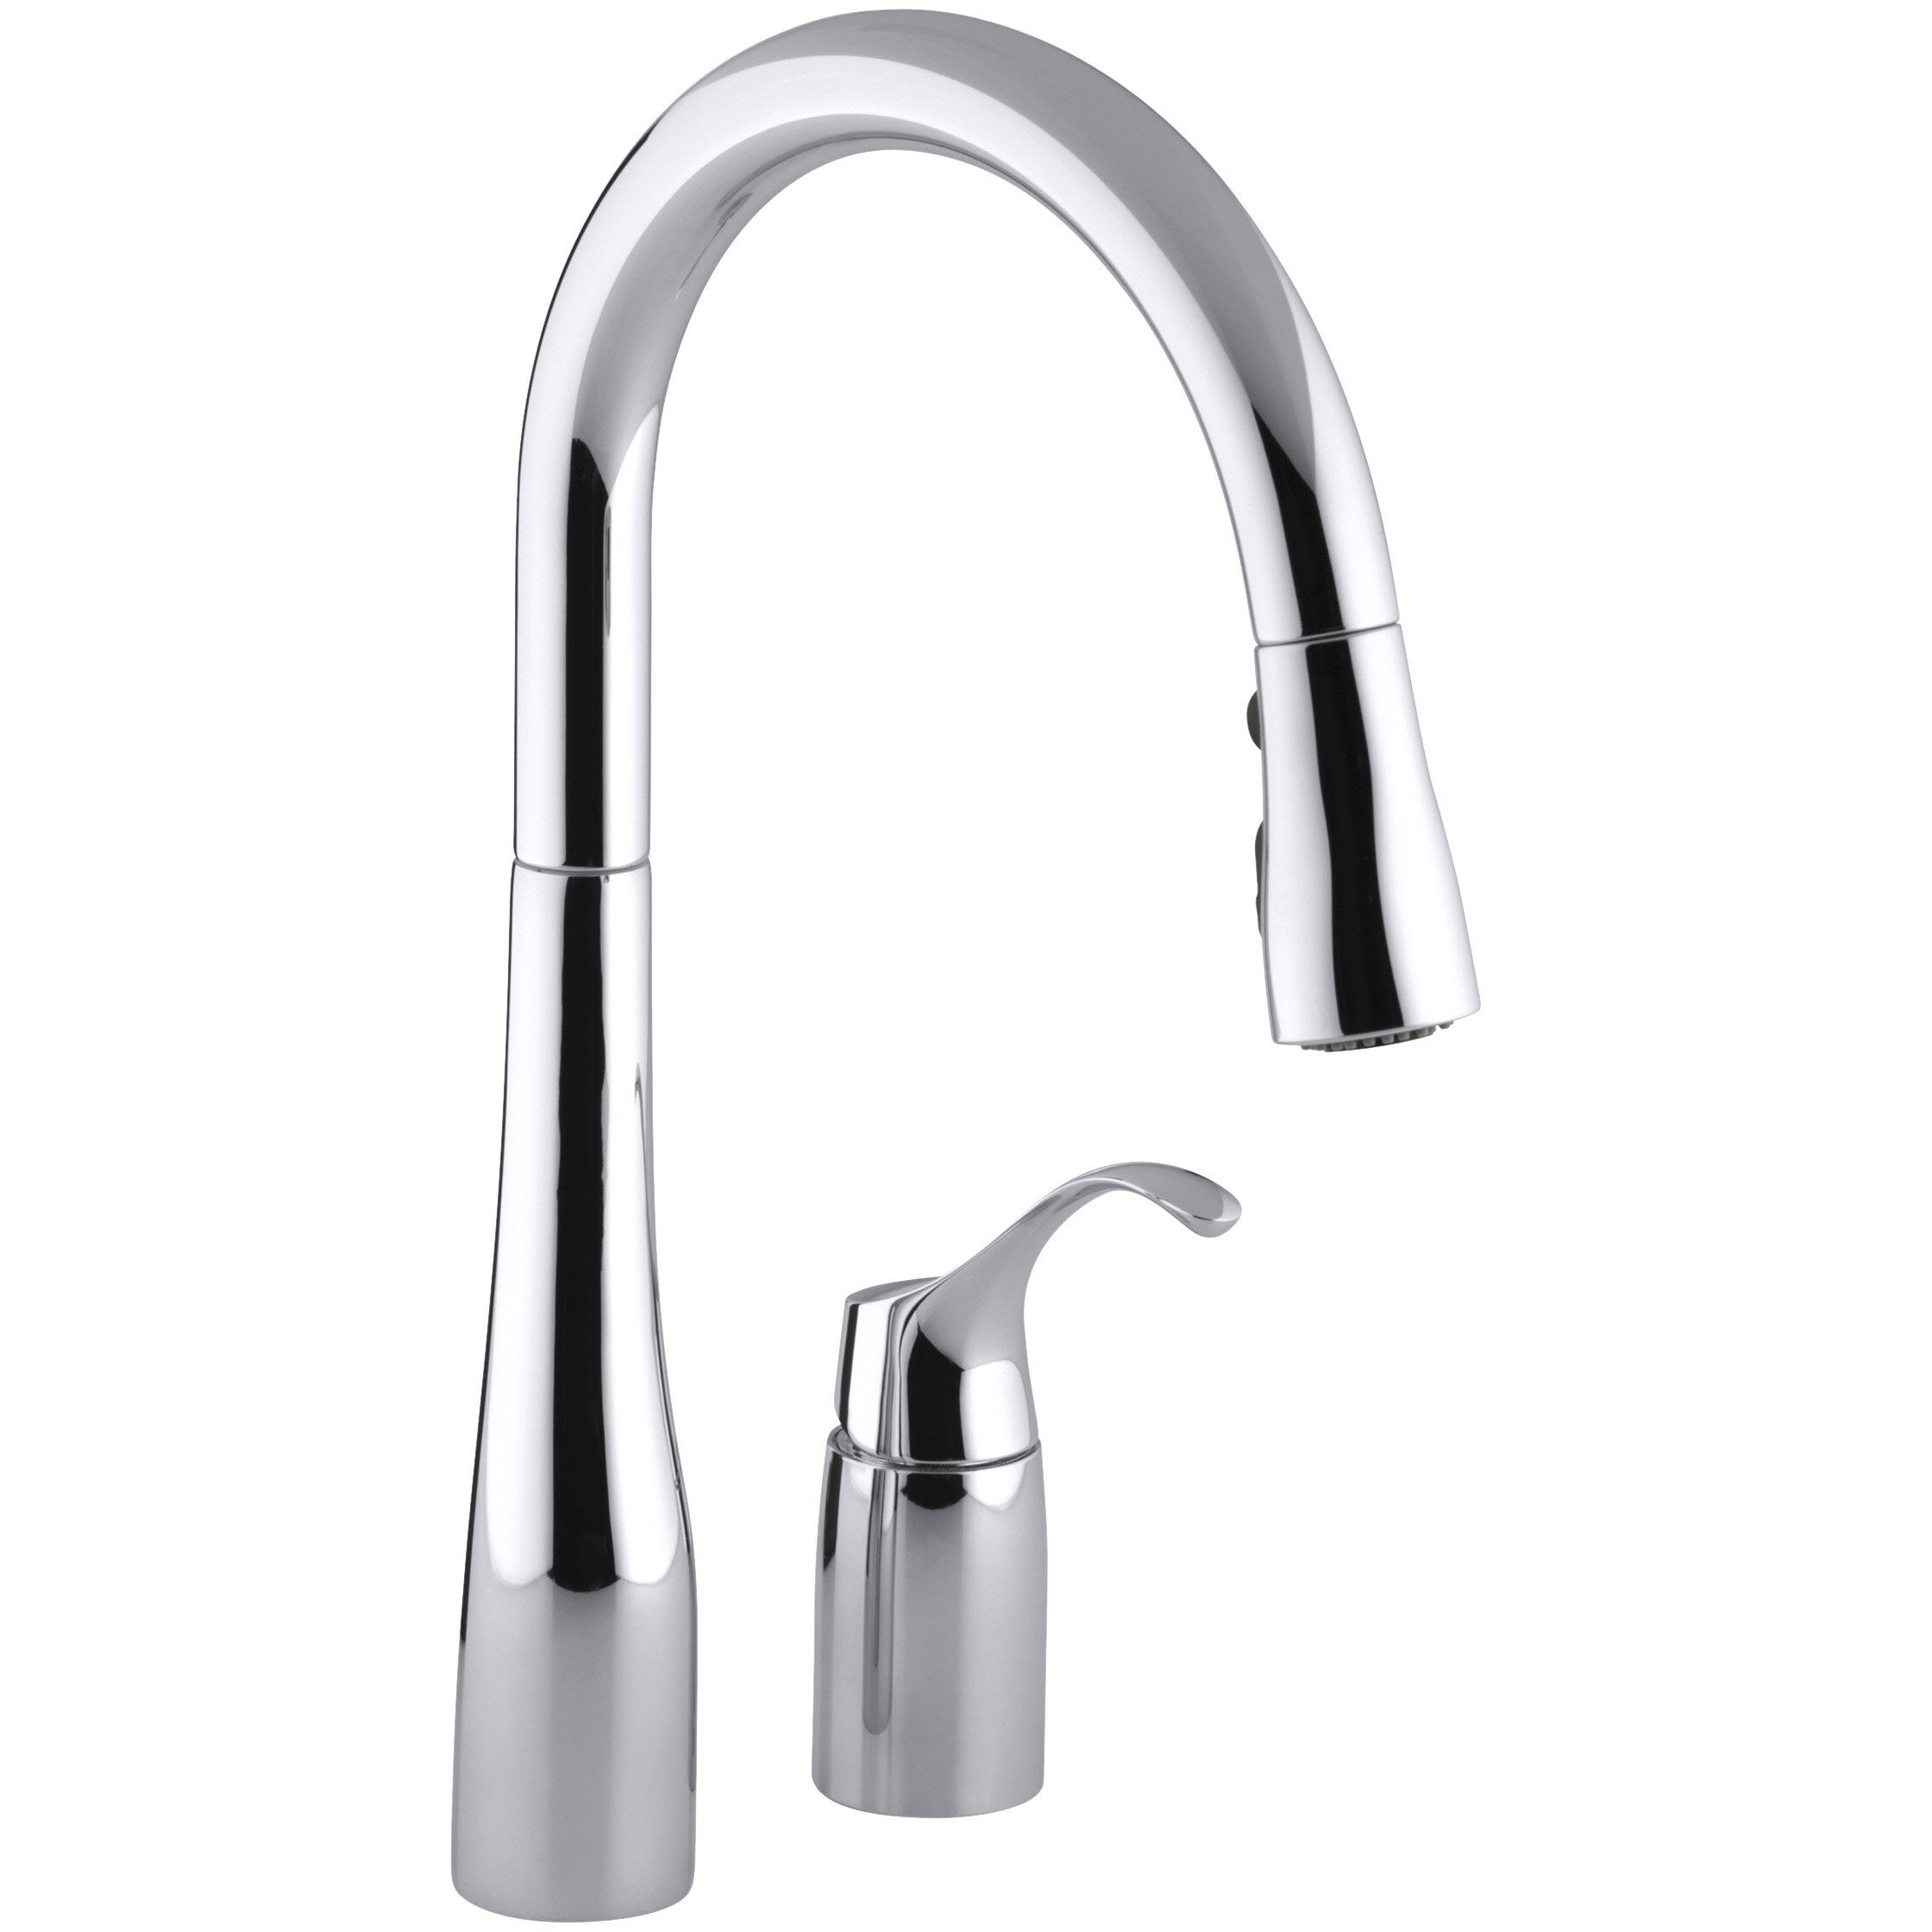 Kohler Simplice TwoHole Kitchen Sink Faucet with 1618 Pull – Kitchen Sink Faucet